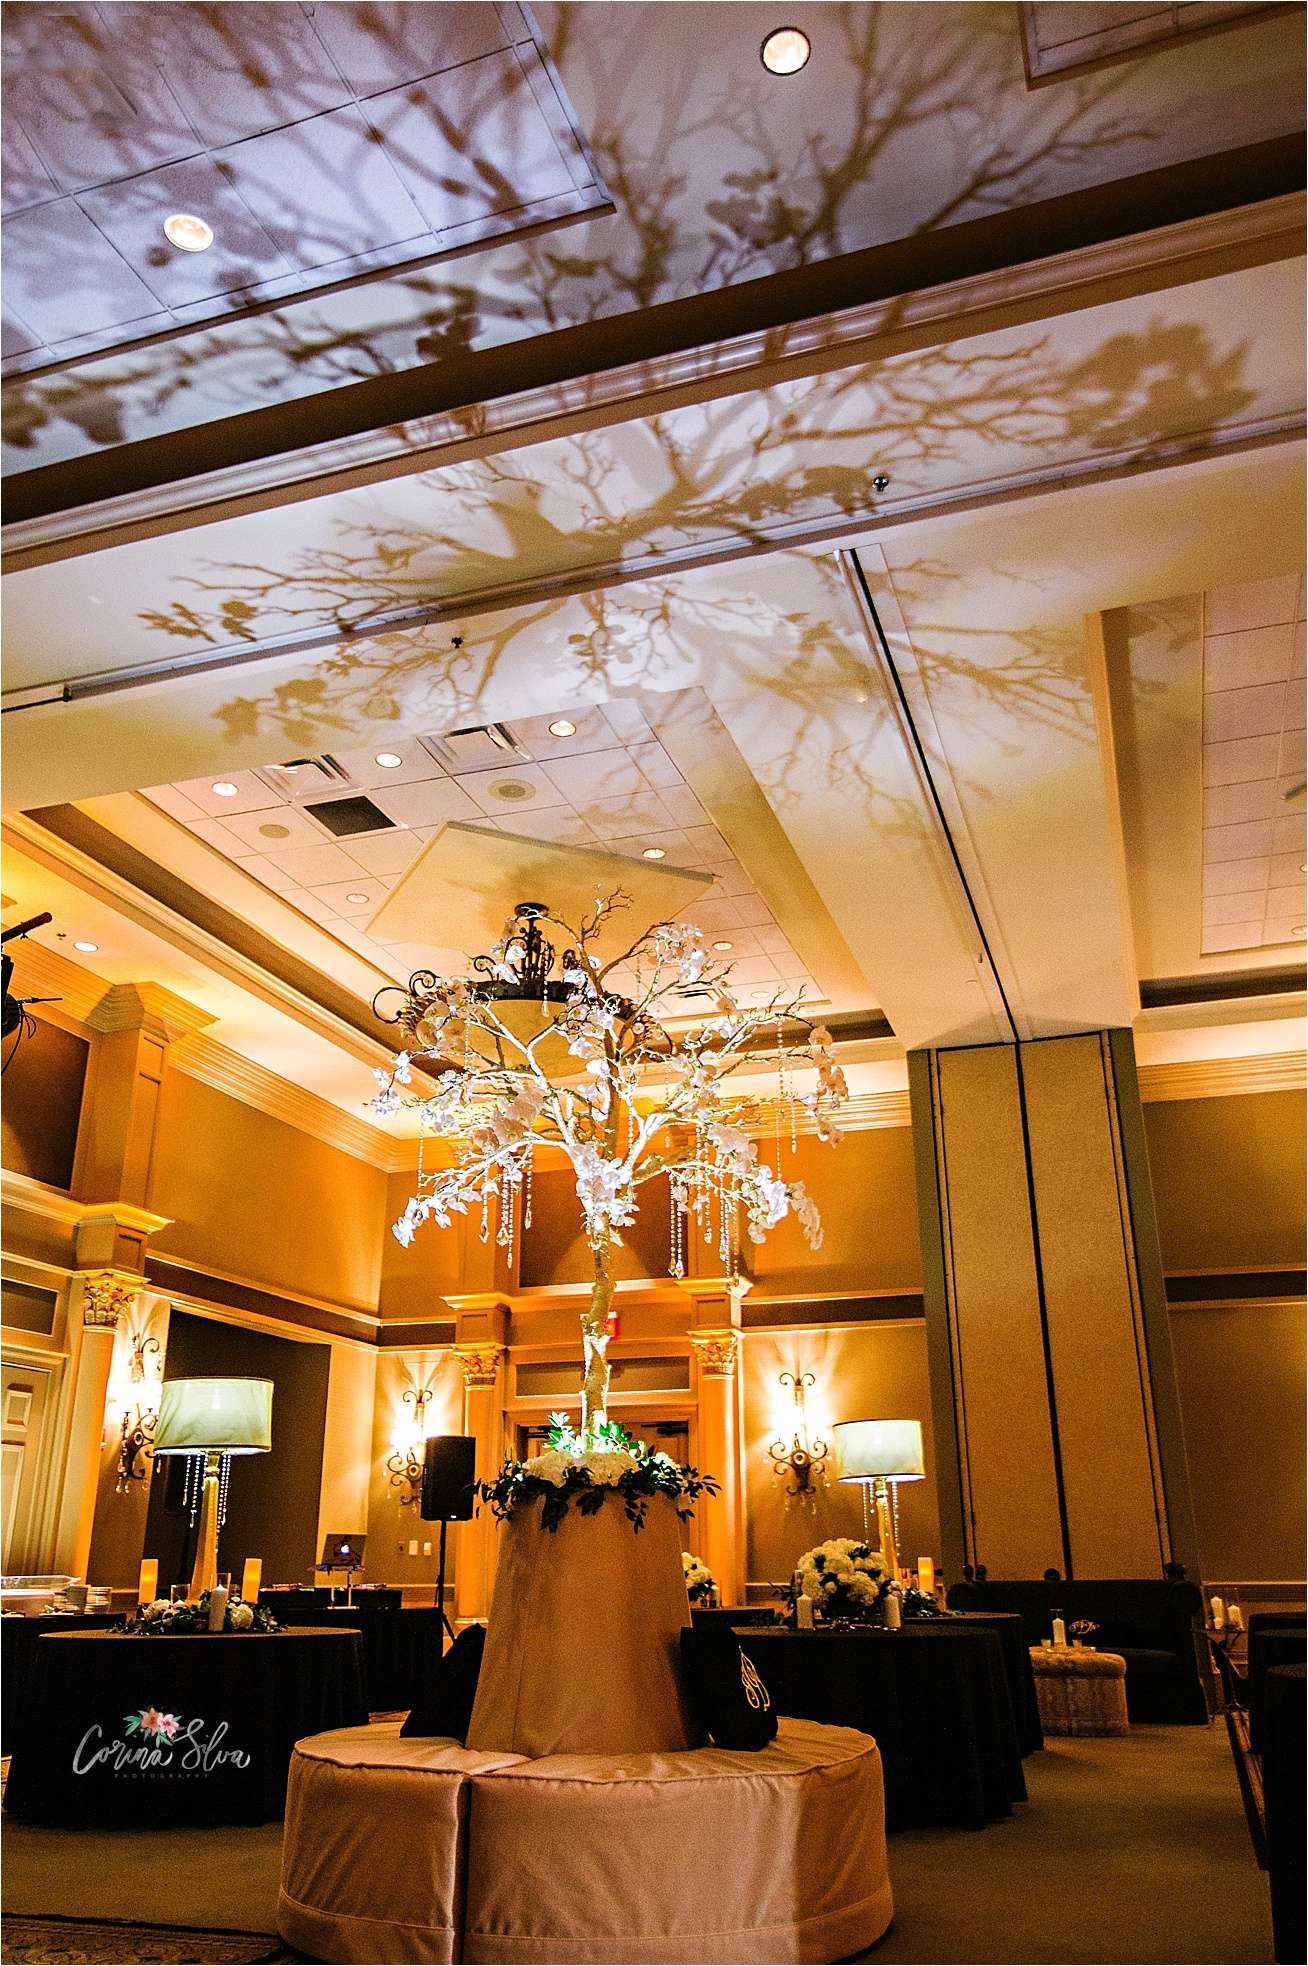 RSG-Event-and-Designs-luxury-wedding-decor-photos, Corina-Silva-Studios_0021.jpg